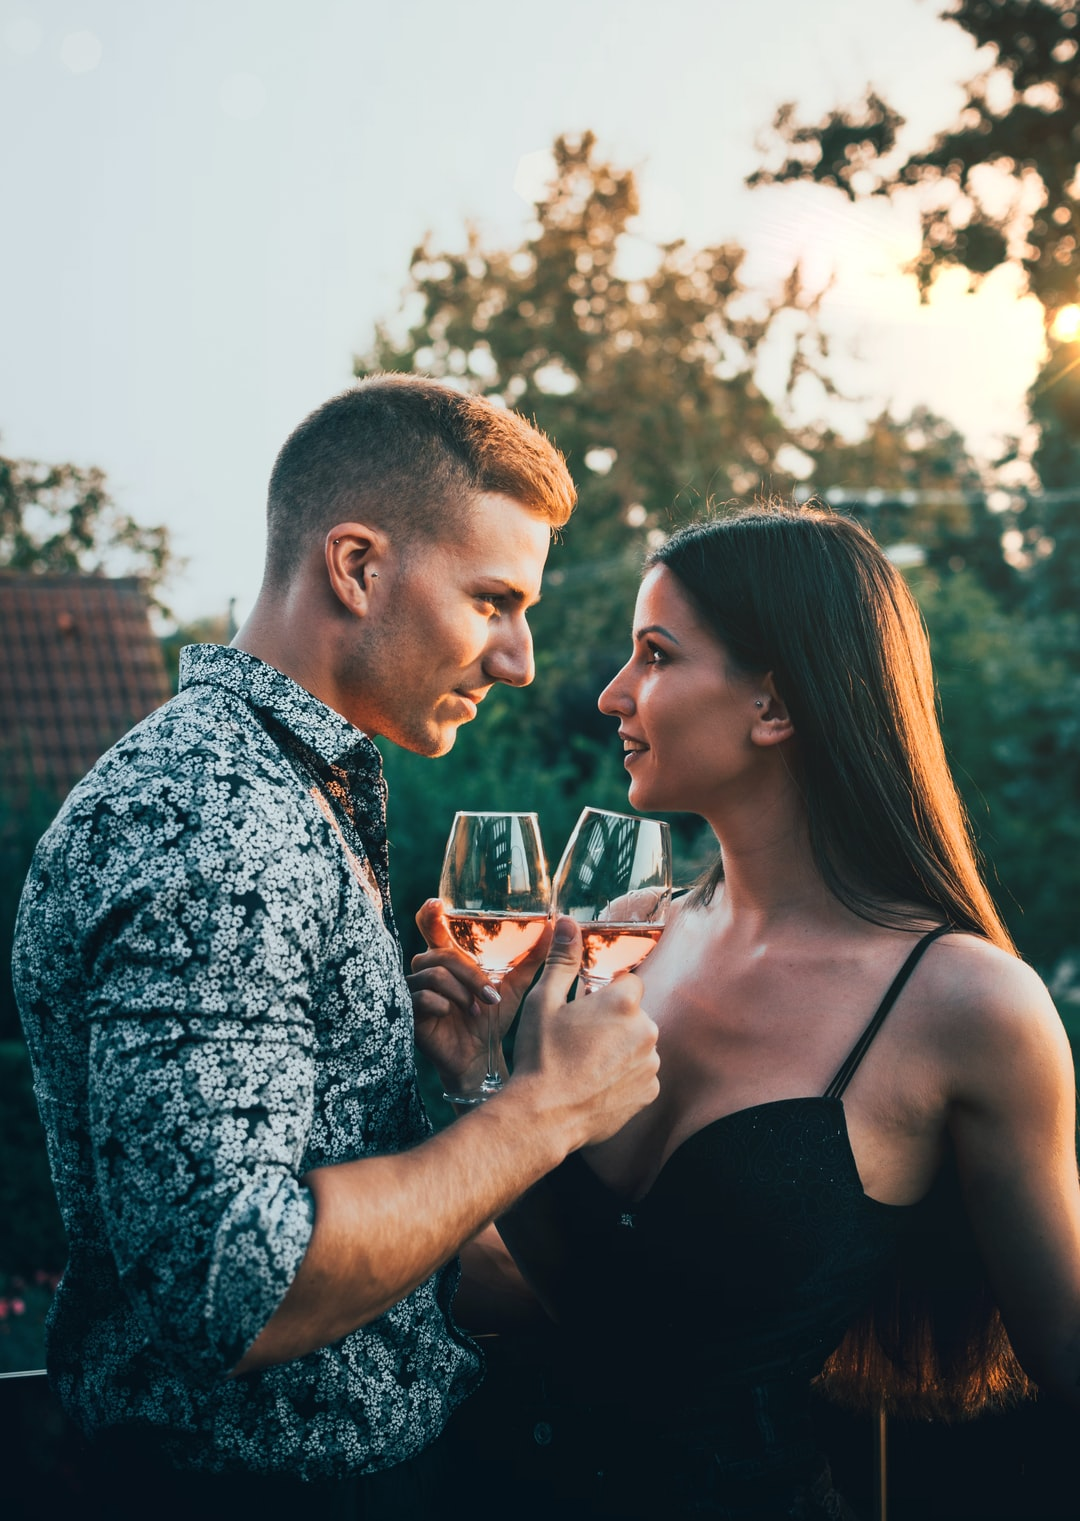 10 Signs He Loves You (Even if He Doesn't Say it Out Loud)